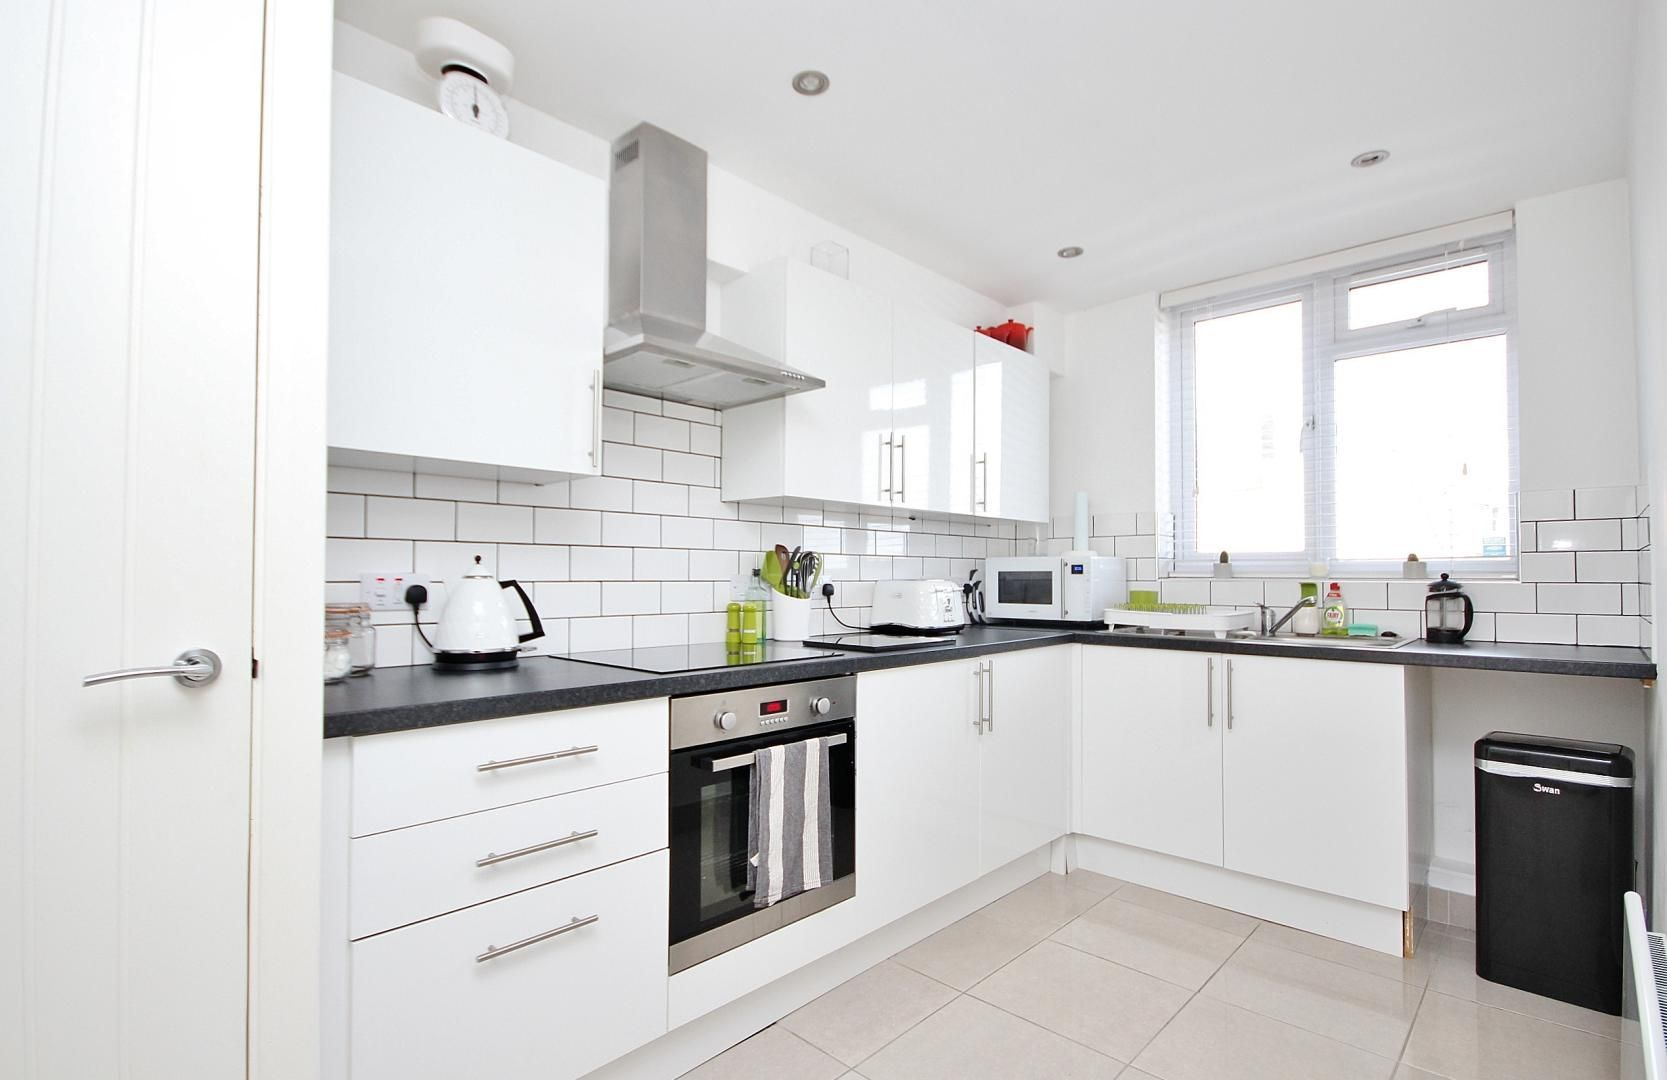 2 bed flat to rent in E1 Studios - Property Image 1